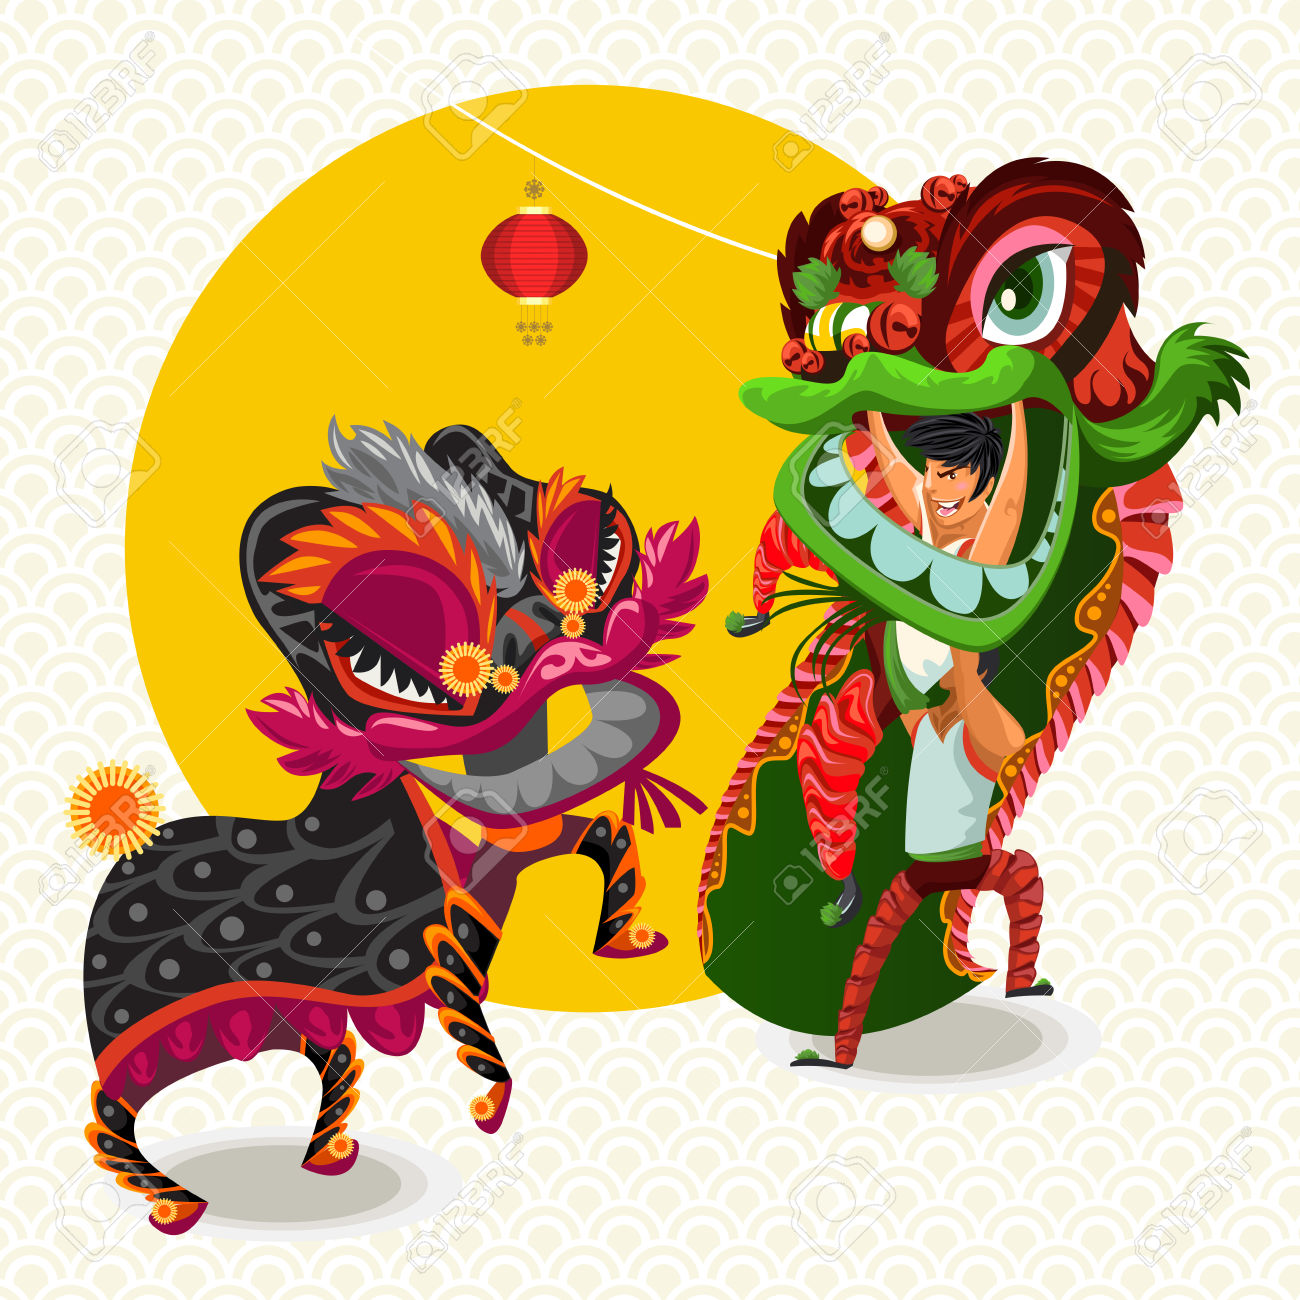 52,462 Chinese New Year Stock Vector Illustration And Royalty Free.